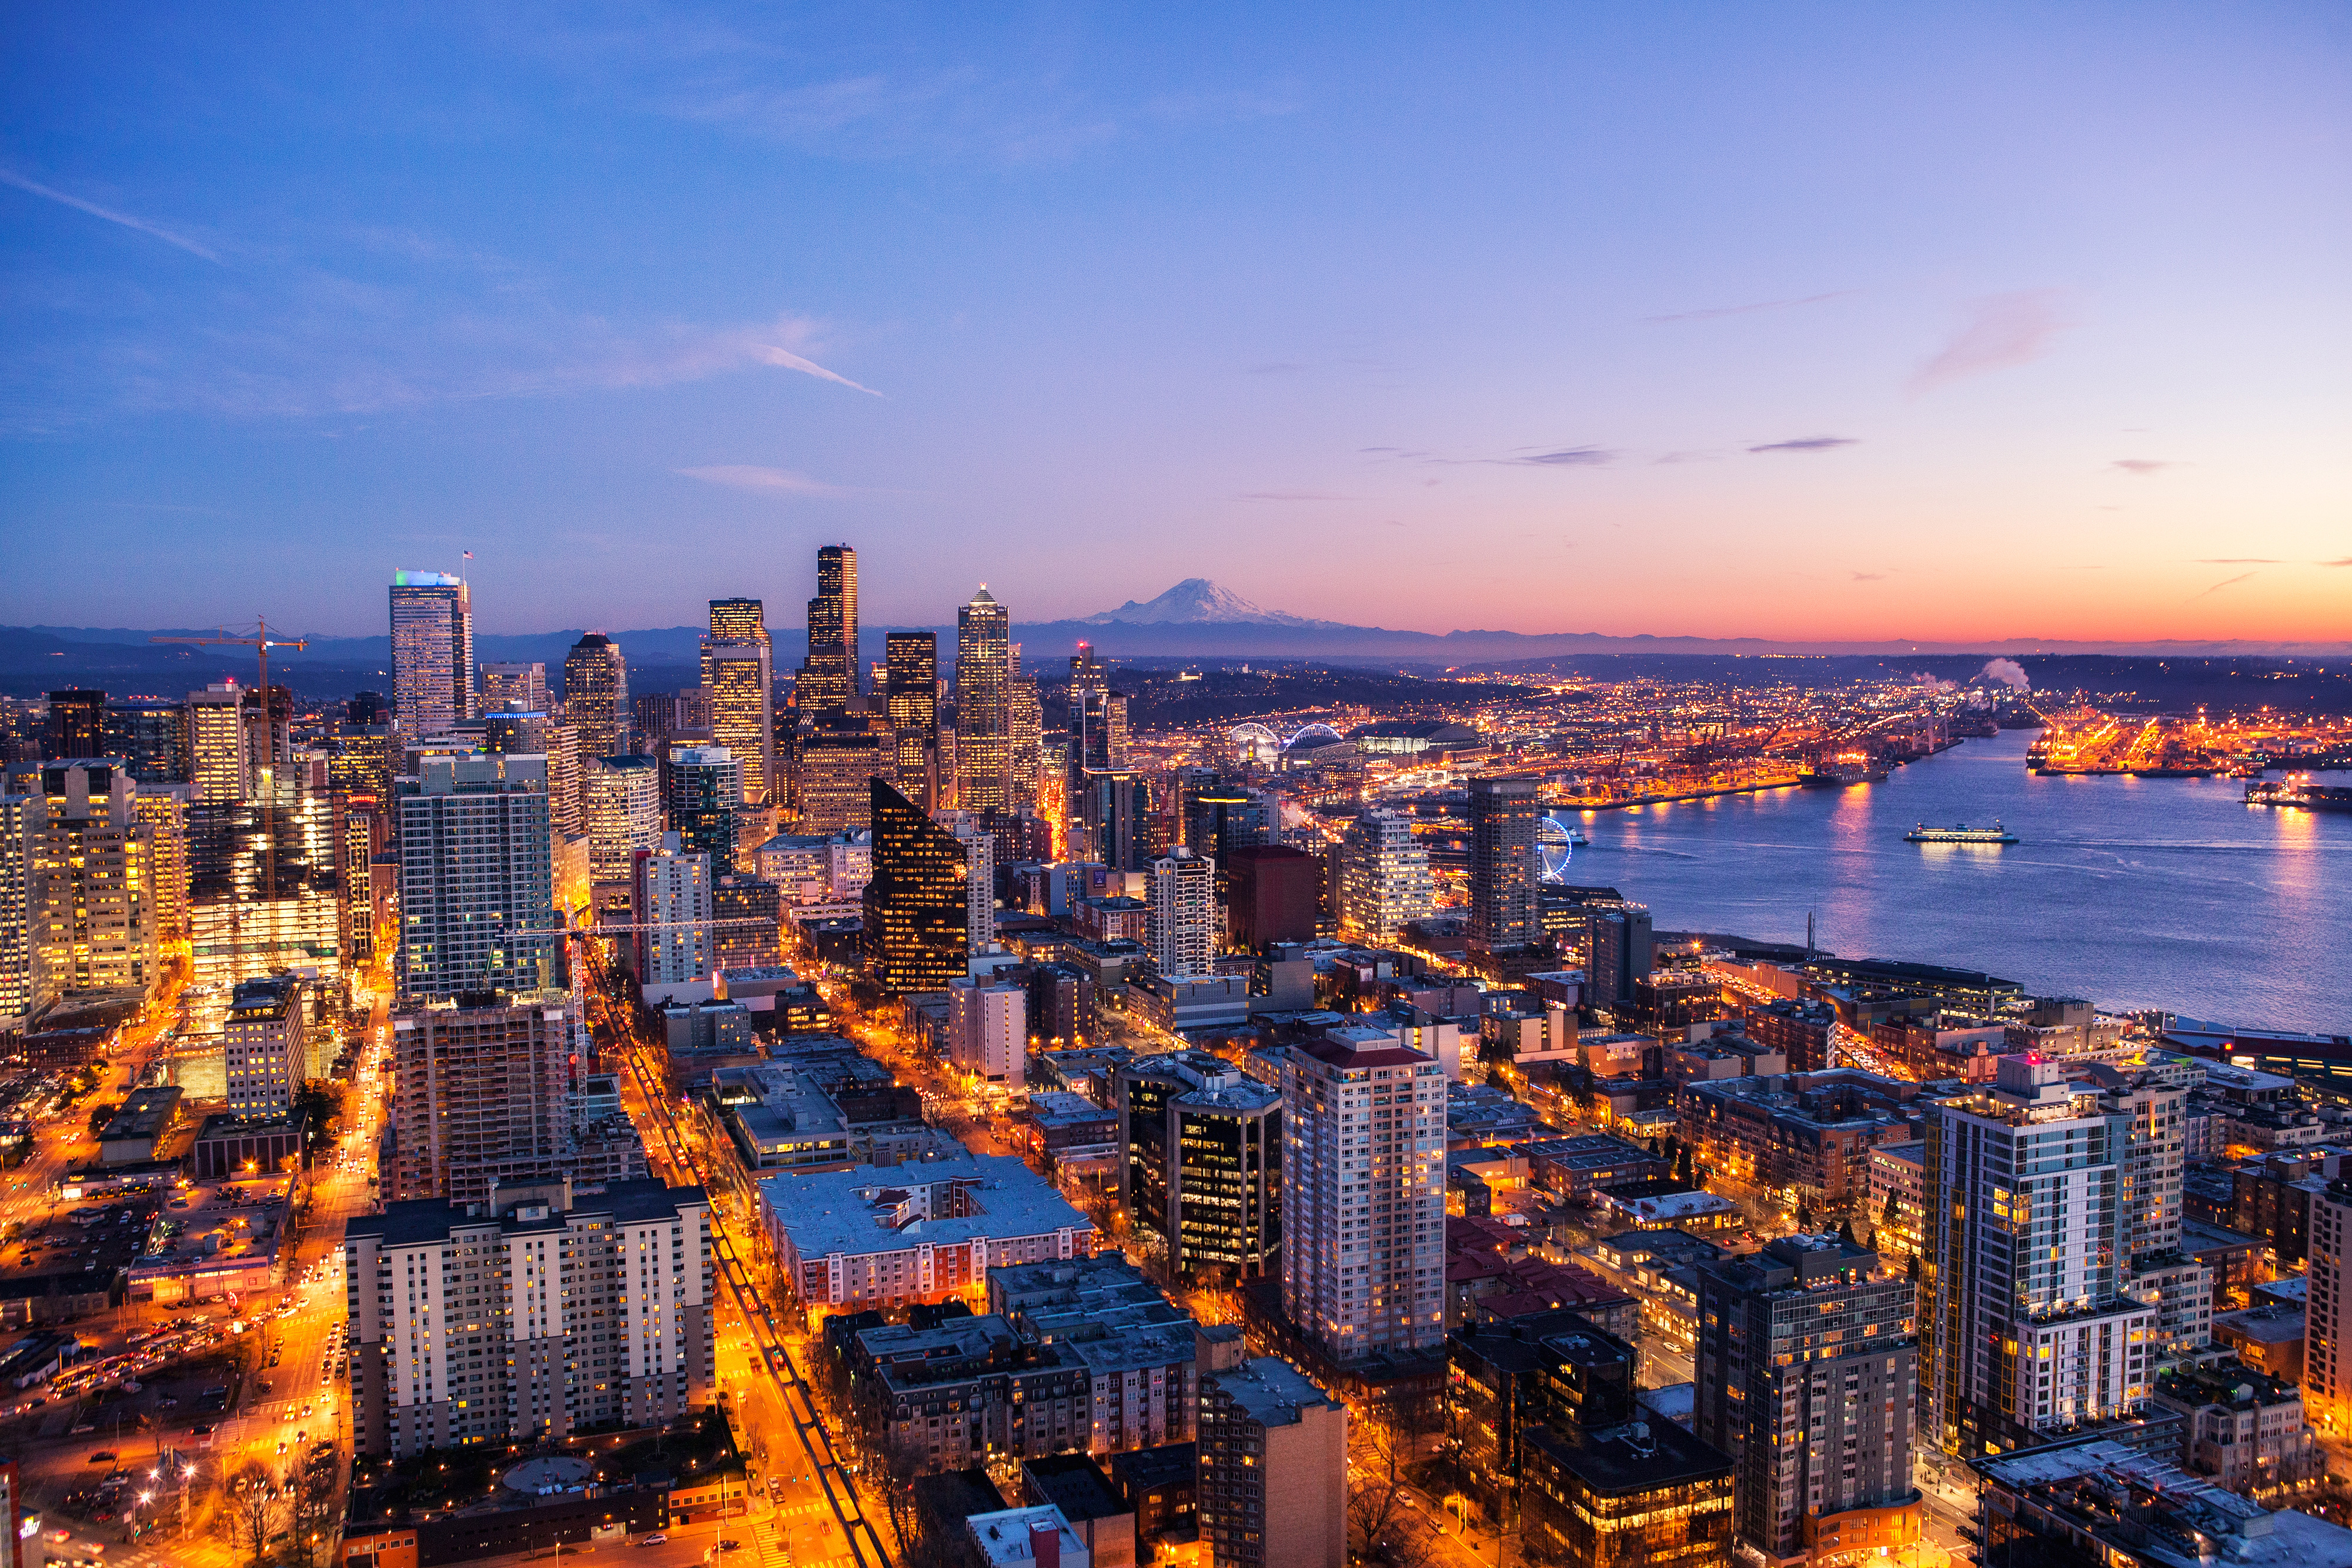 1125x2436 Seattle Skyline At Night View 4k Iphone Xs Iphone 10 Iphone X Hd 4k Wallpapers Images Backgrounds Photos And Pictures